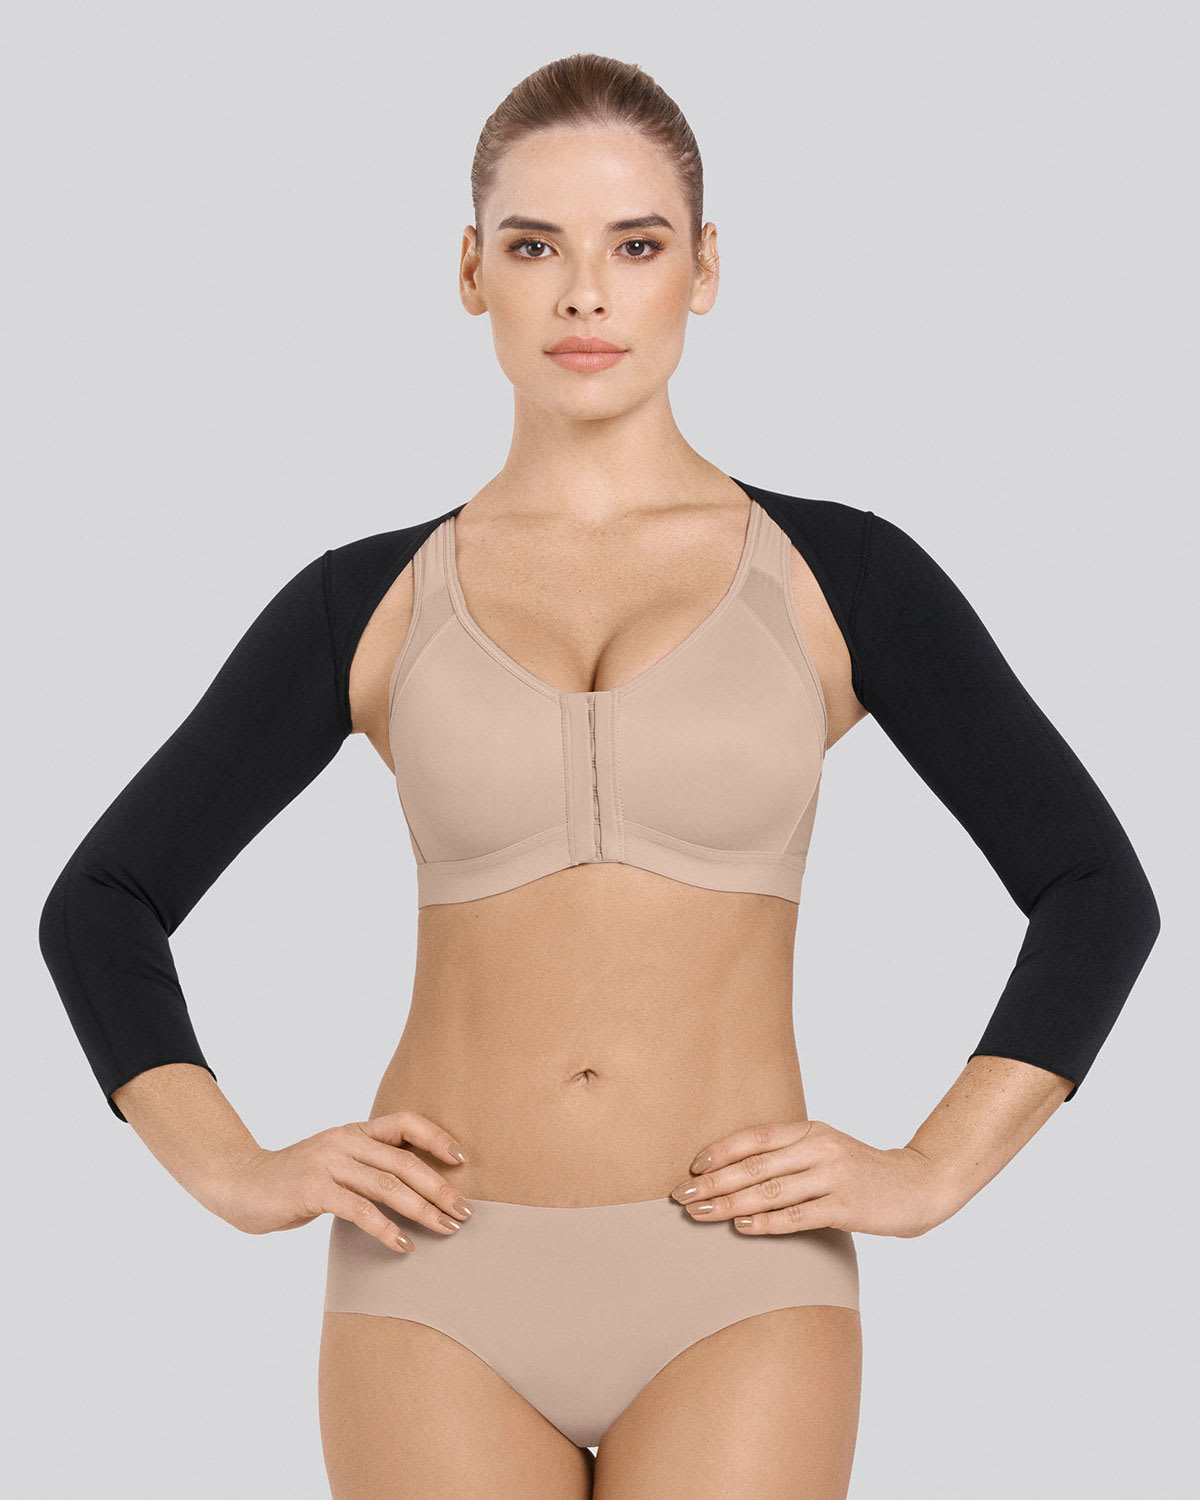 Invisible Slimming Arm Shaper - Doctor Recommended